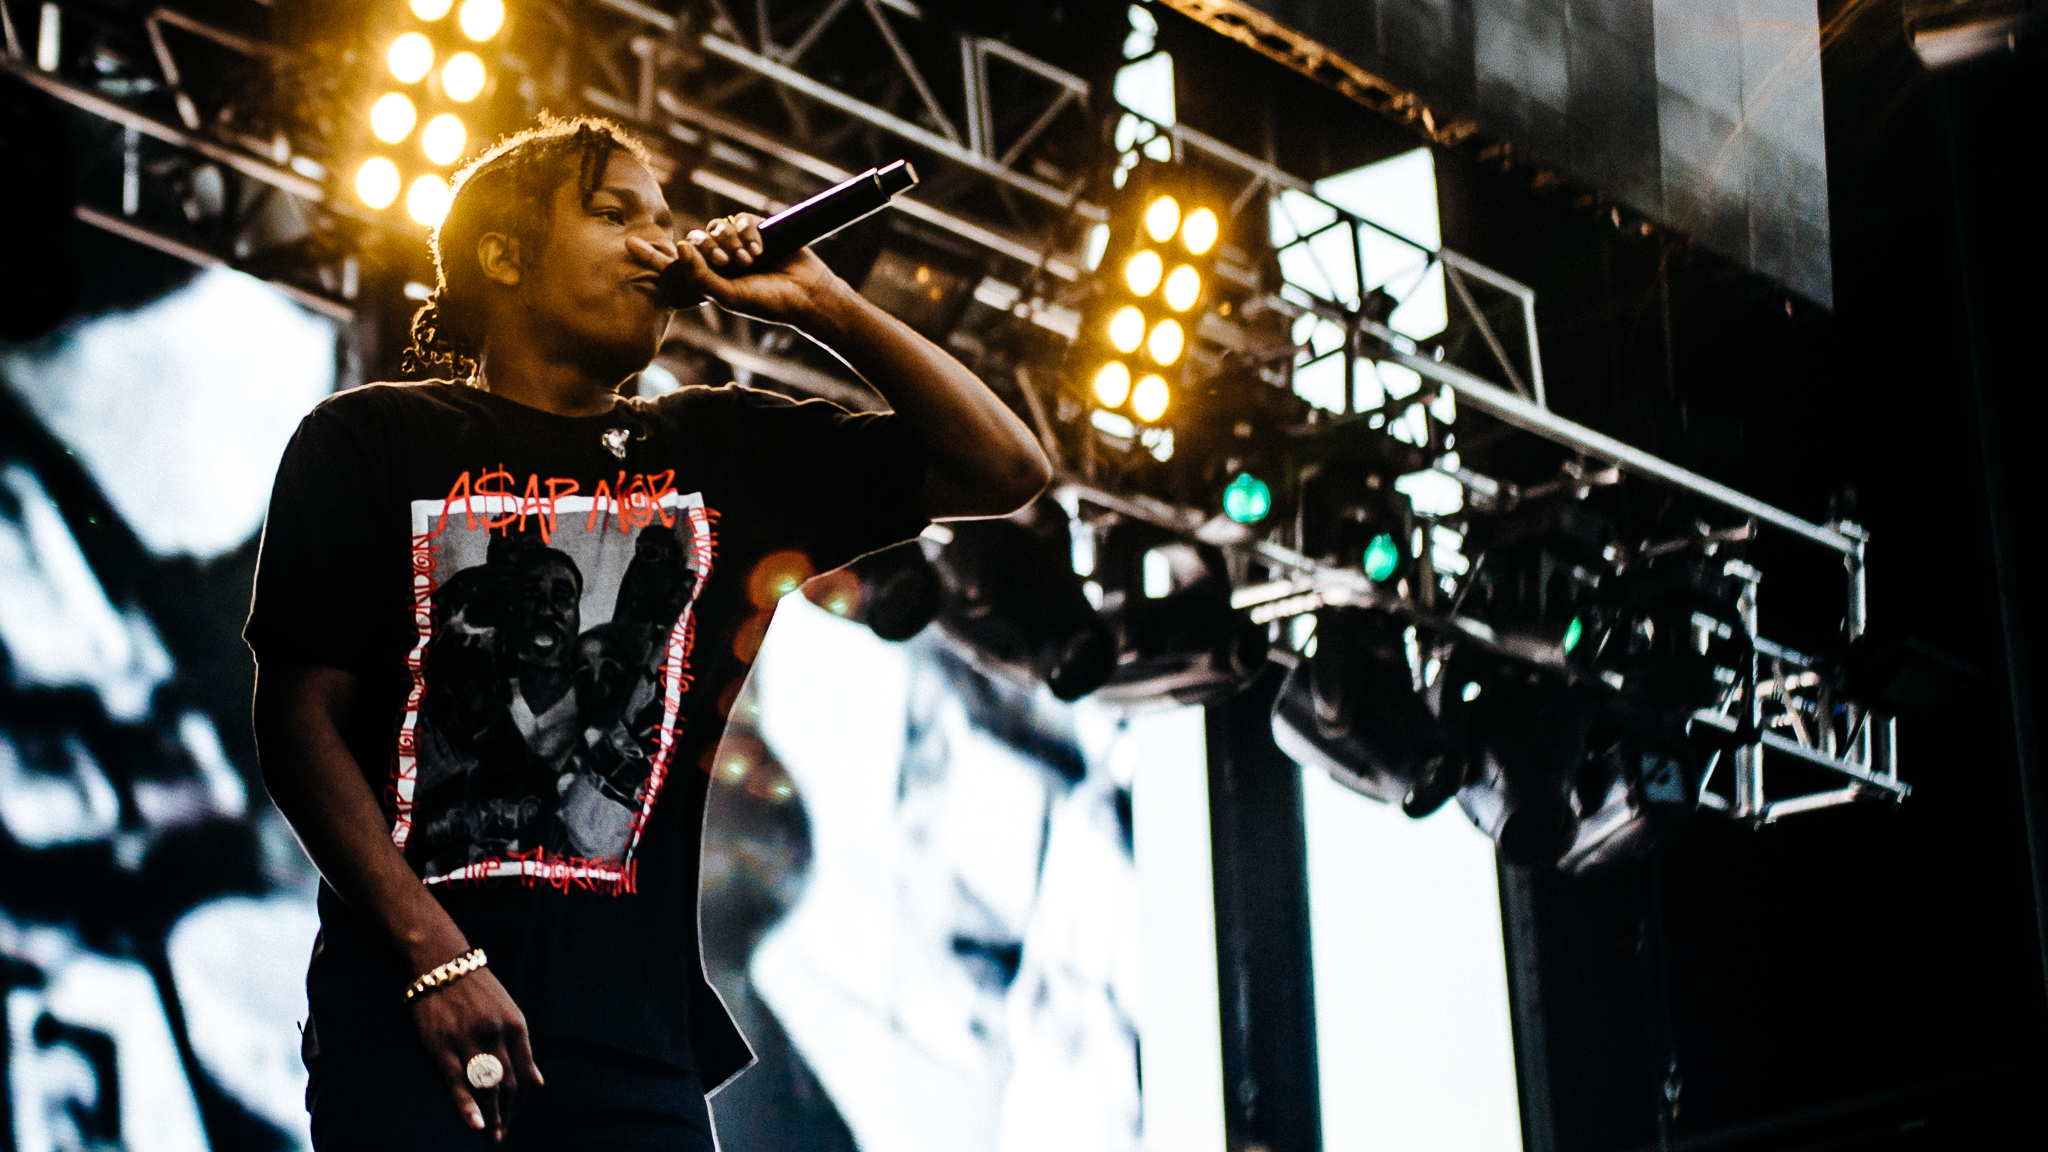 A$AP Rocky hit the stage in Grant Park on the final day of Lollapalooza on August 2, 2015.